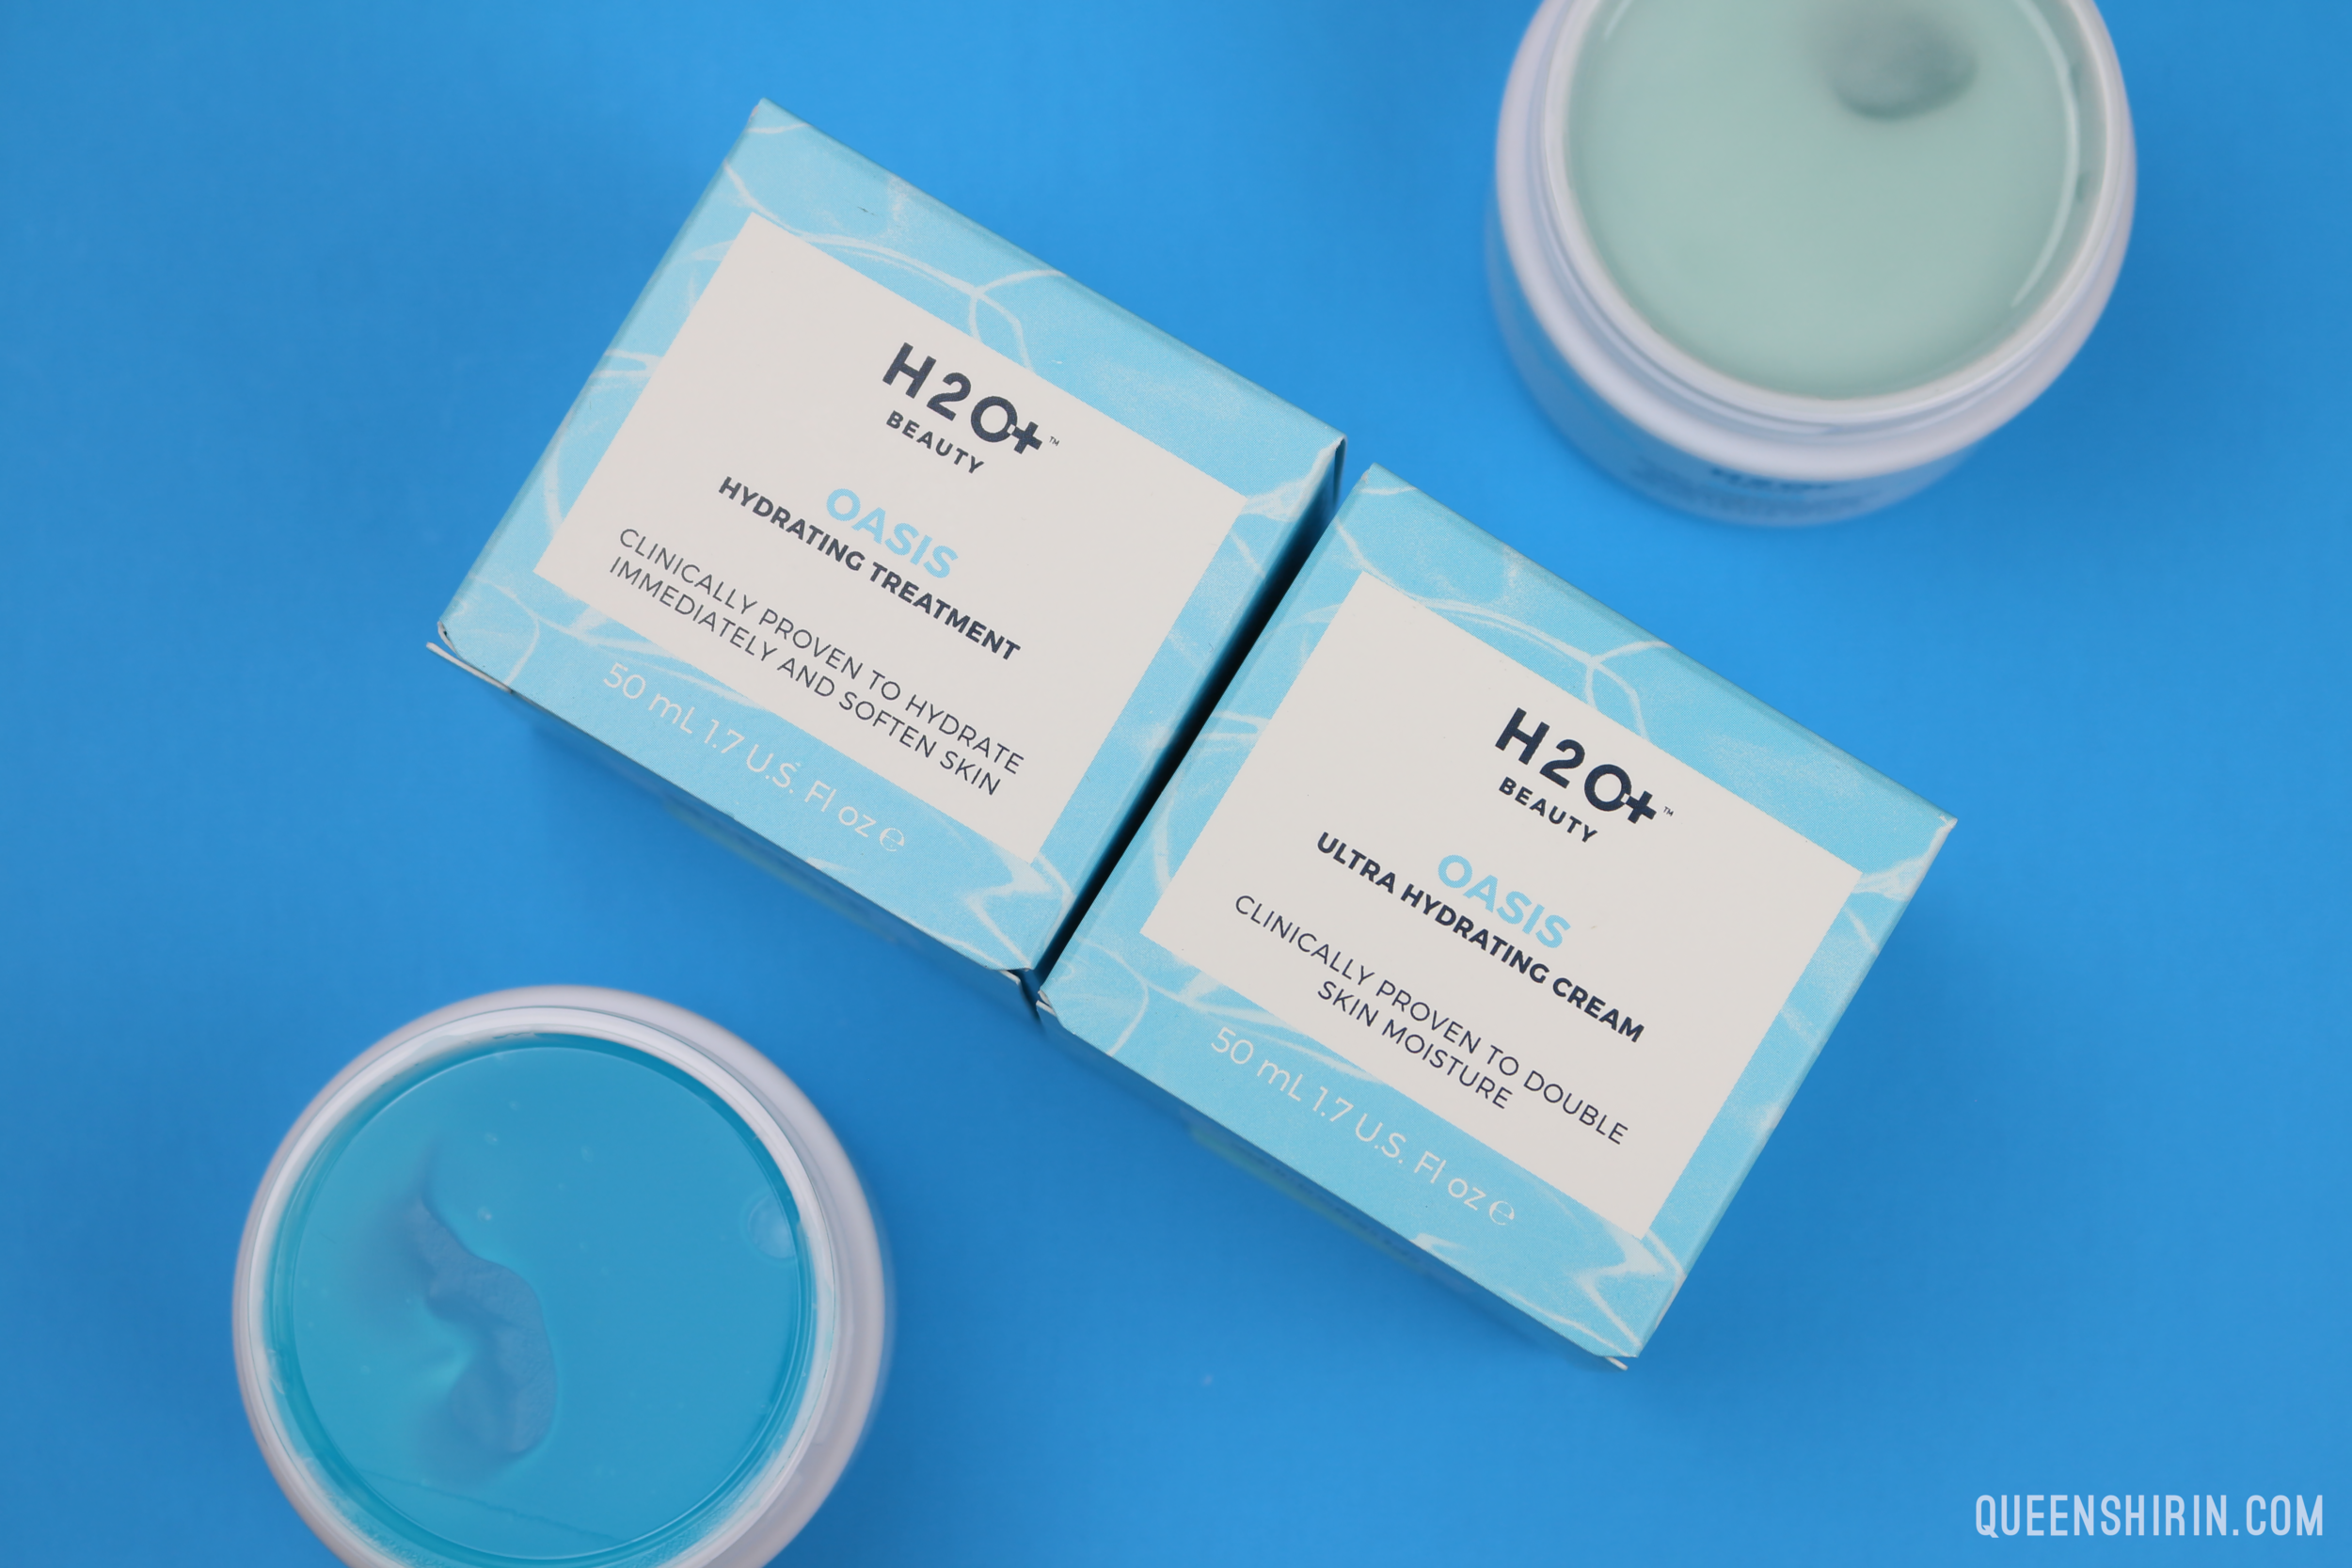 H2O Beauty Oasis Ultra Hydrating Cream and Oasis Hydrating Treatment | Queen Shirin | queenshirin.com